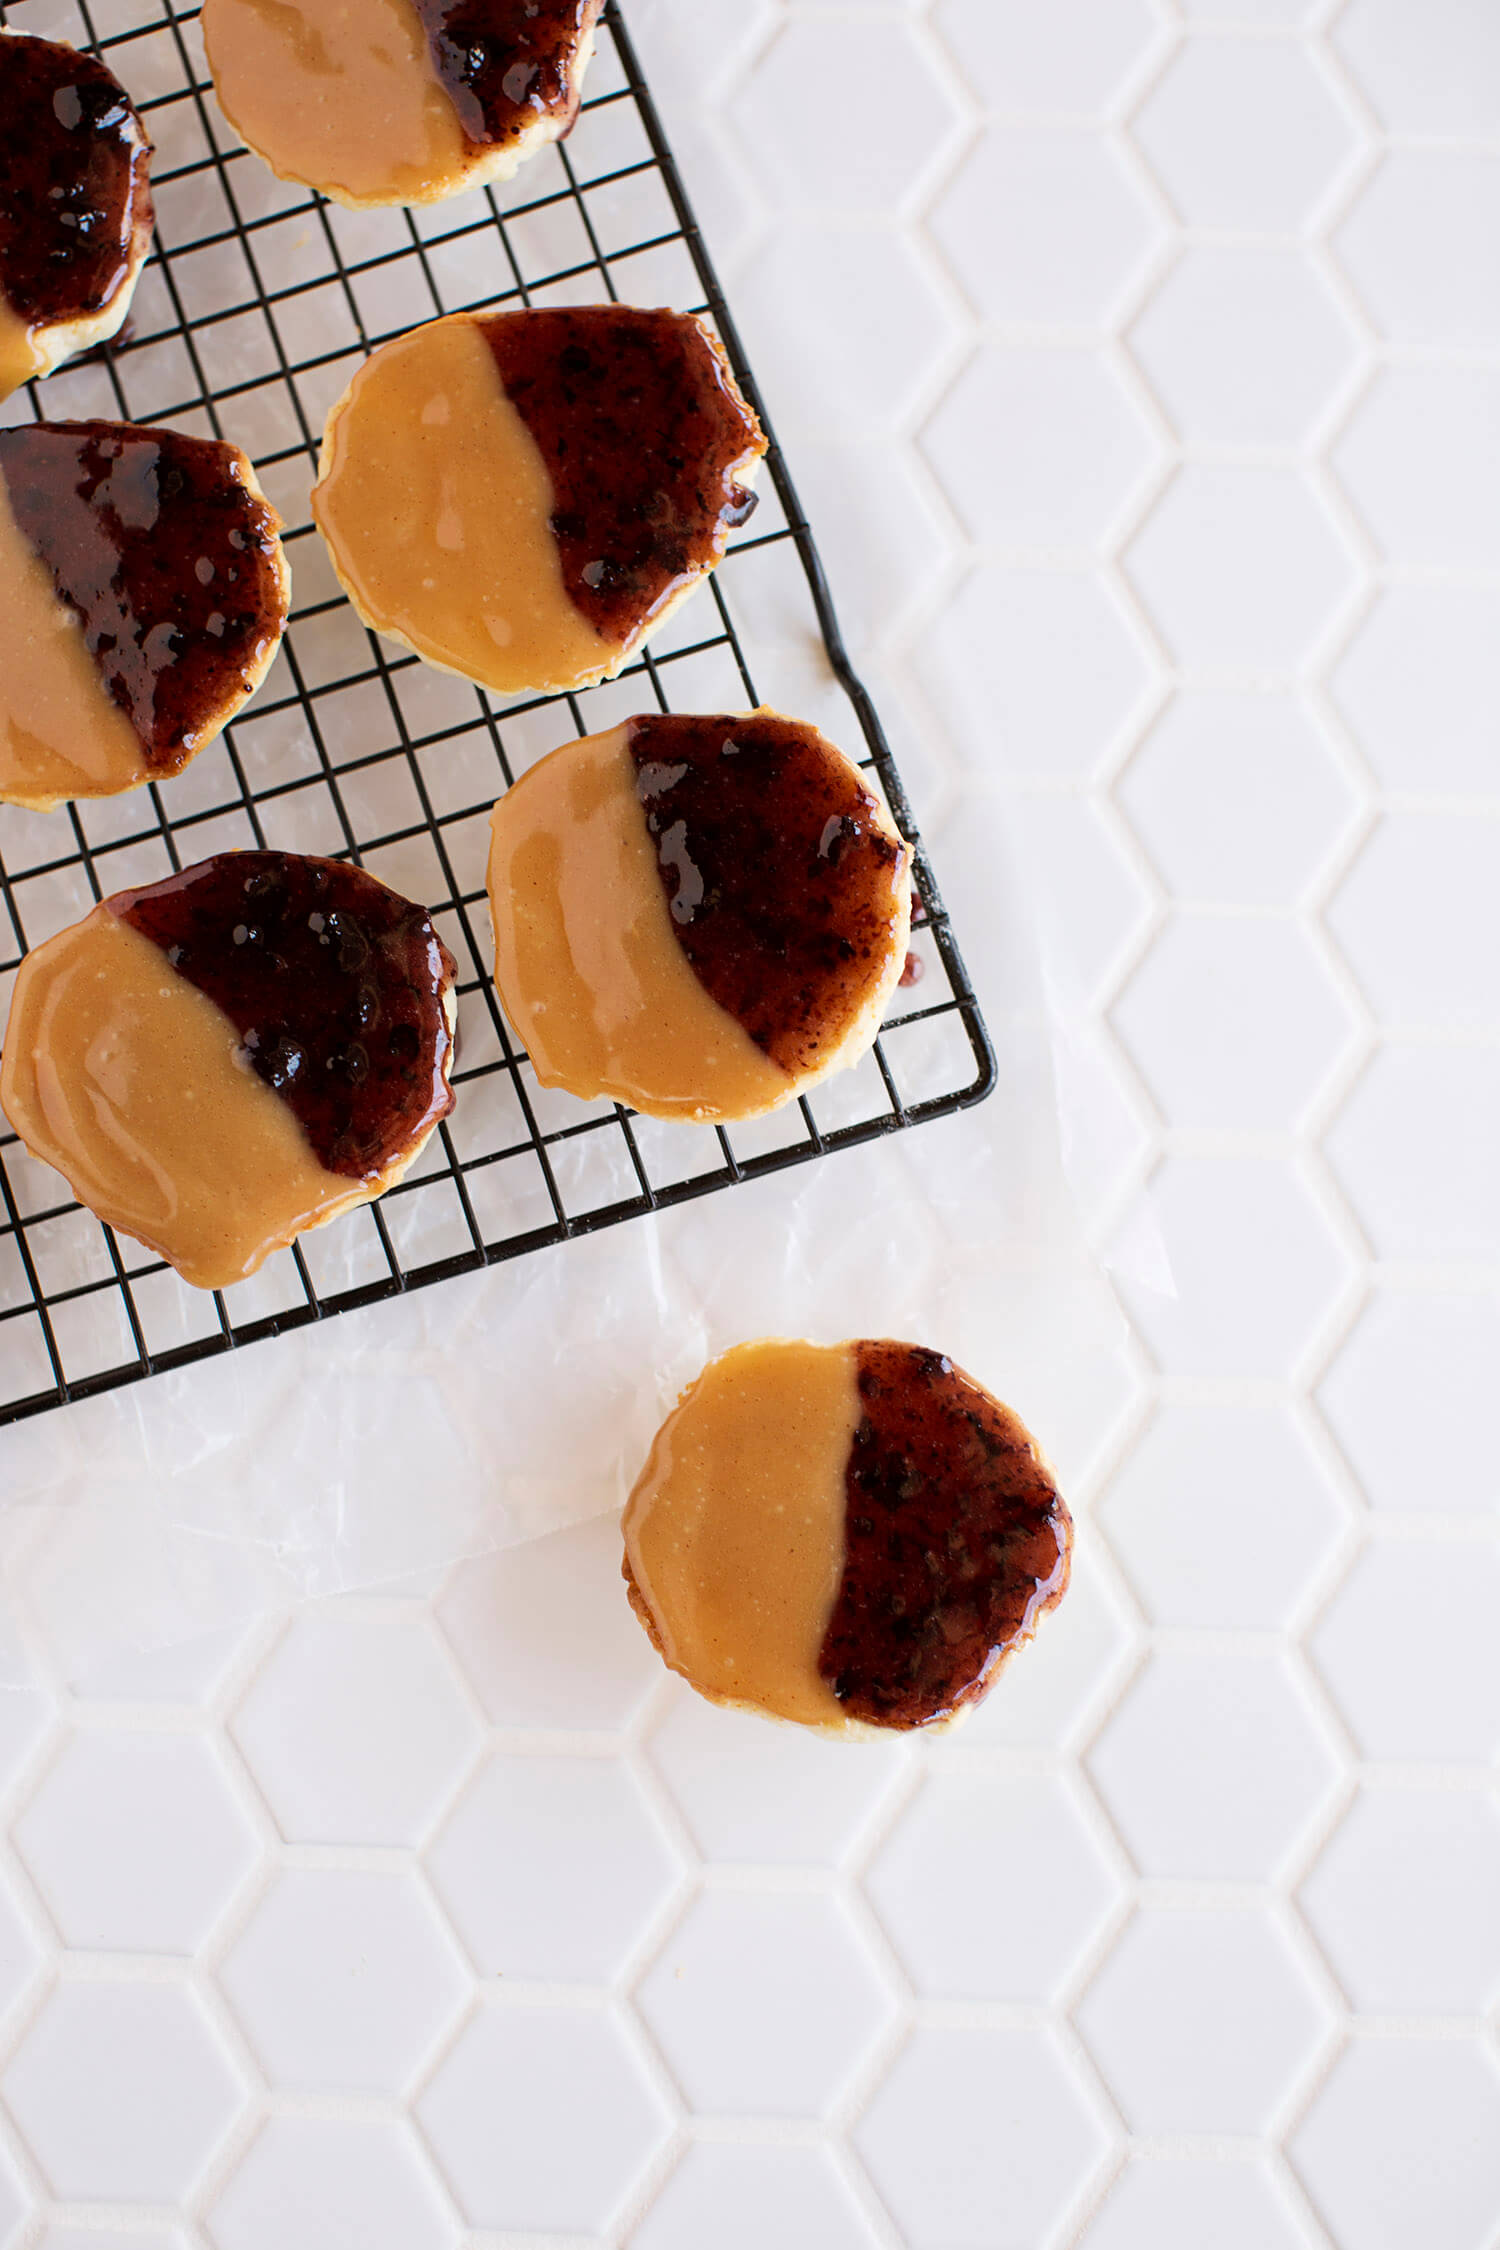 Peanut Butter & Jelly Cookies (via staging.abeautifulmess.com)